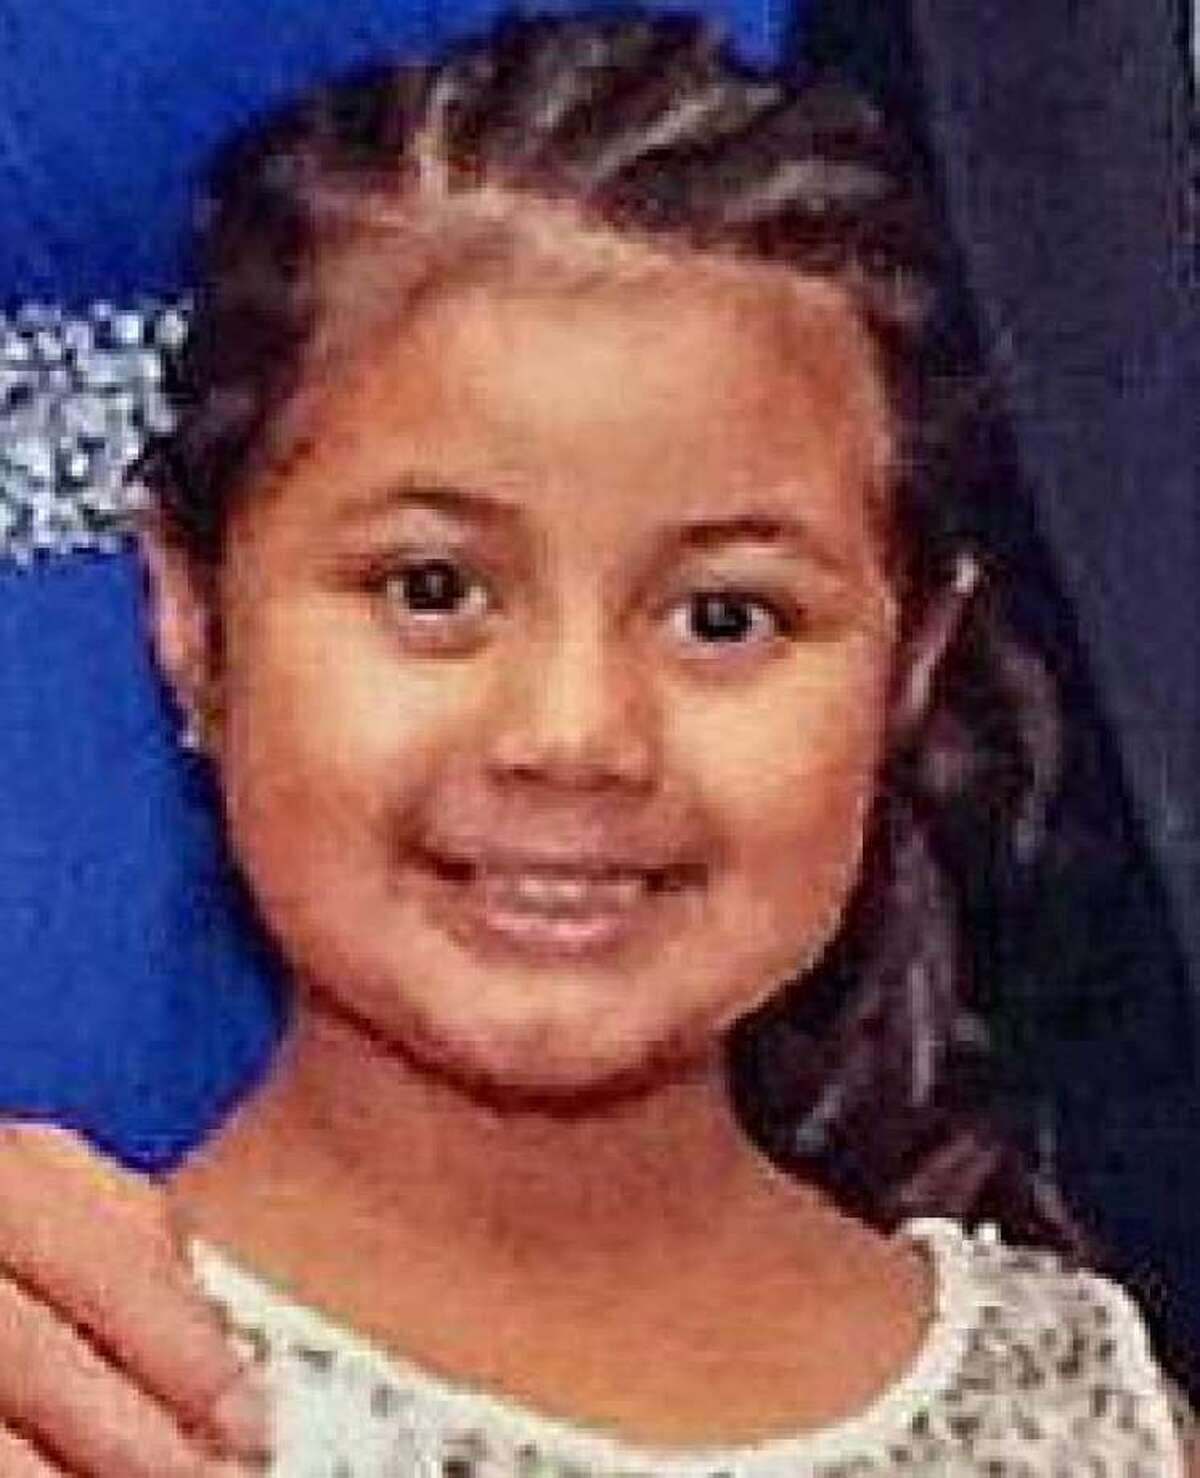 Police have issued an Amber Alert for a missing 6-year-old Bridgeport girl, Aylin Sofia Hernandez, who could be in the Bronx with her father, a suspect wanted for a double stabbing. (Connecticut State Police)